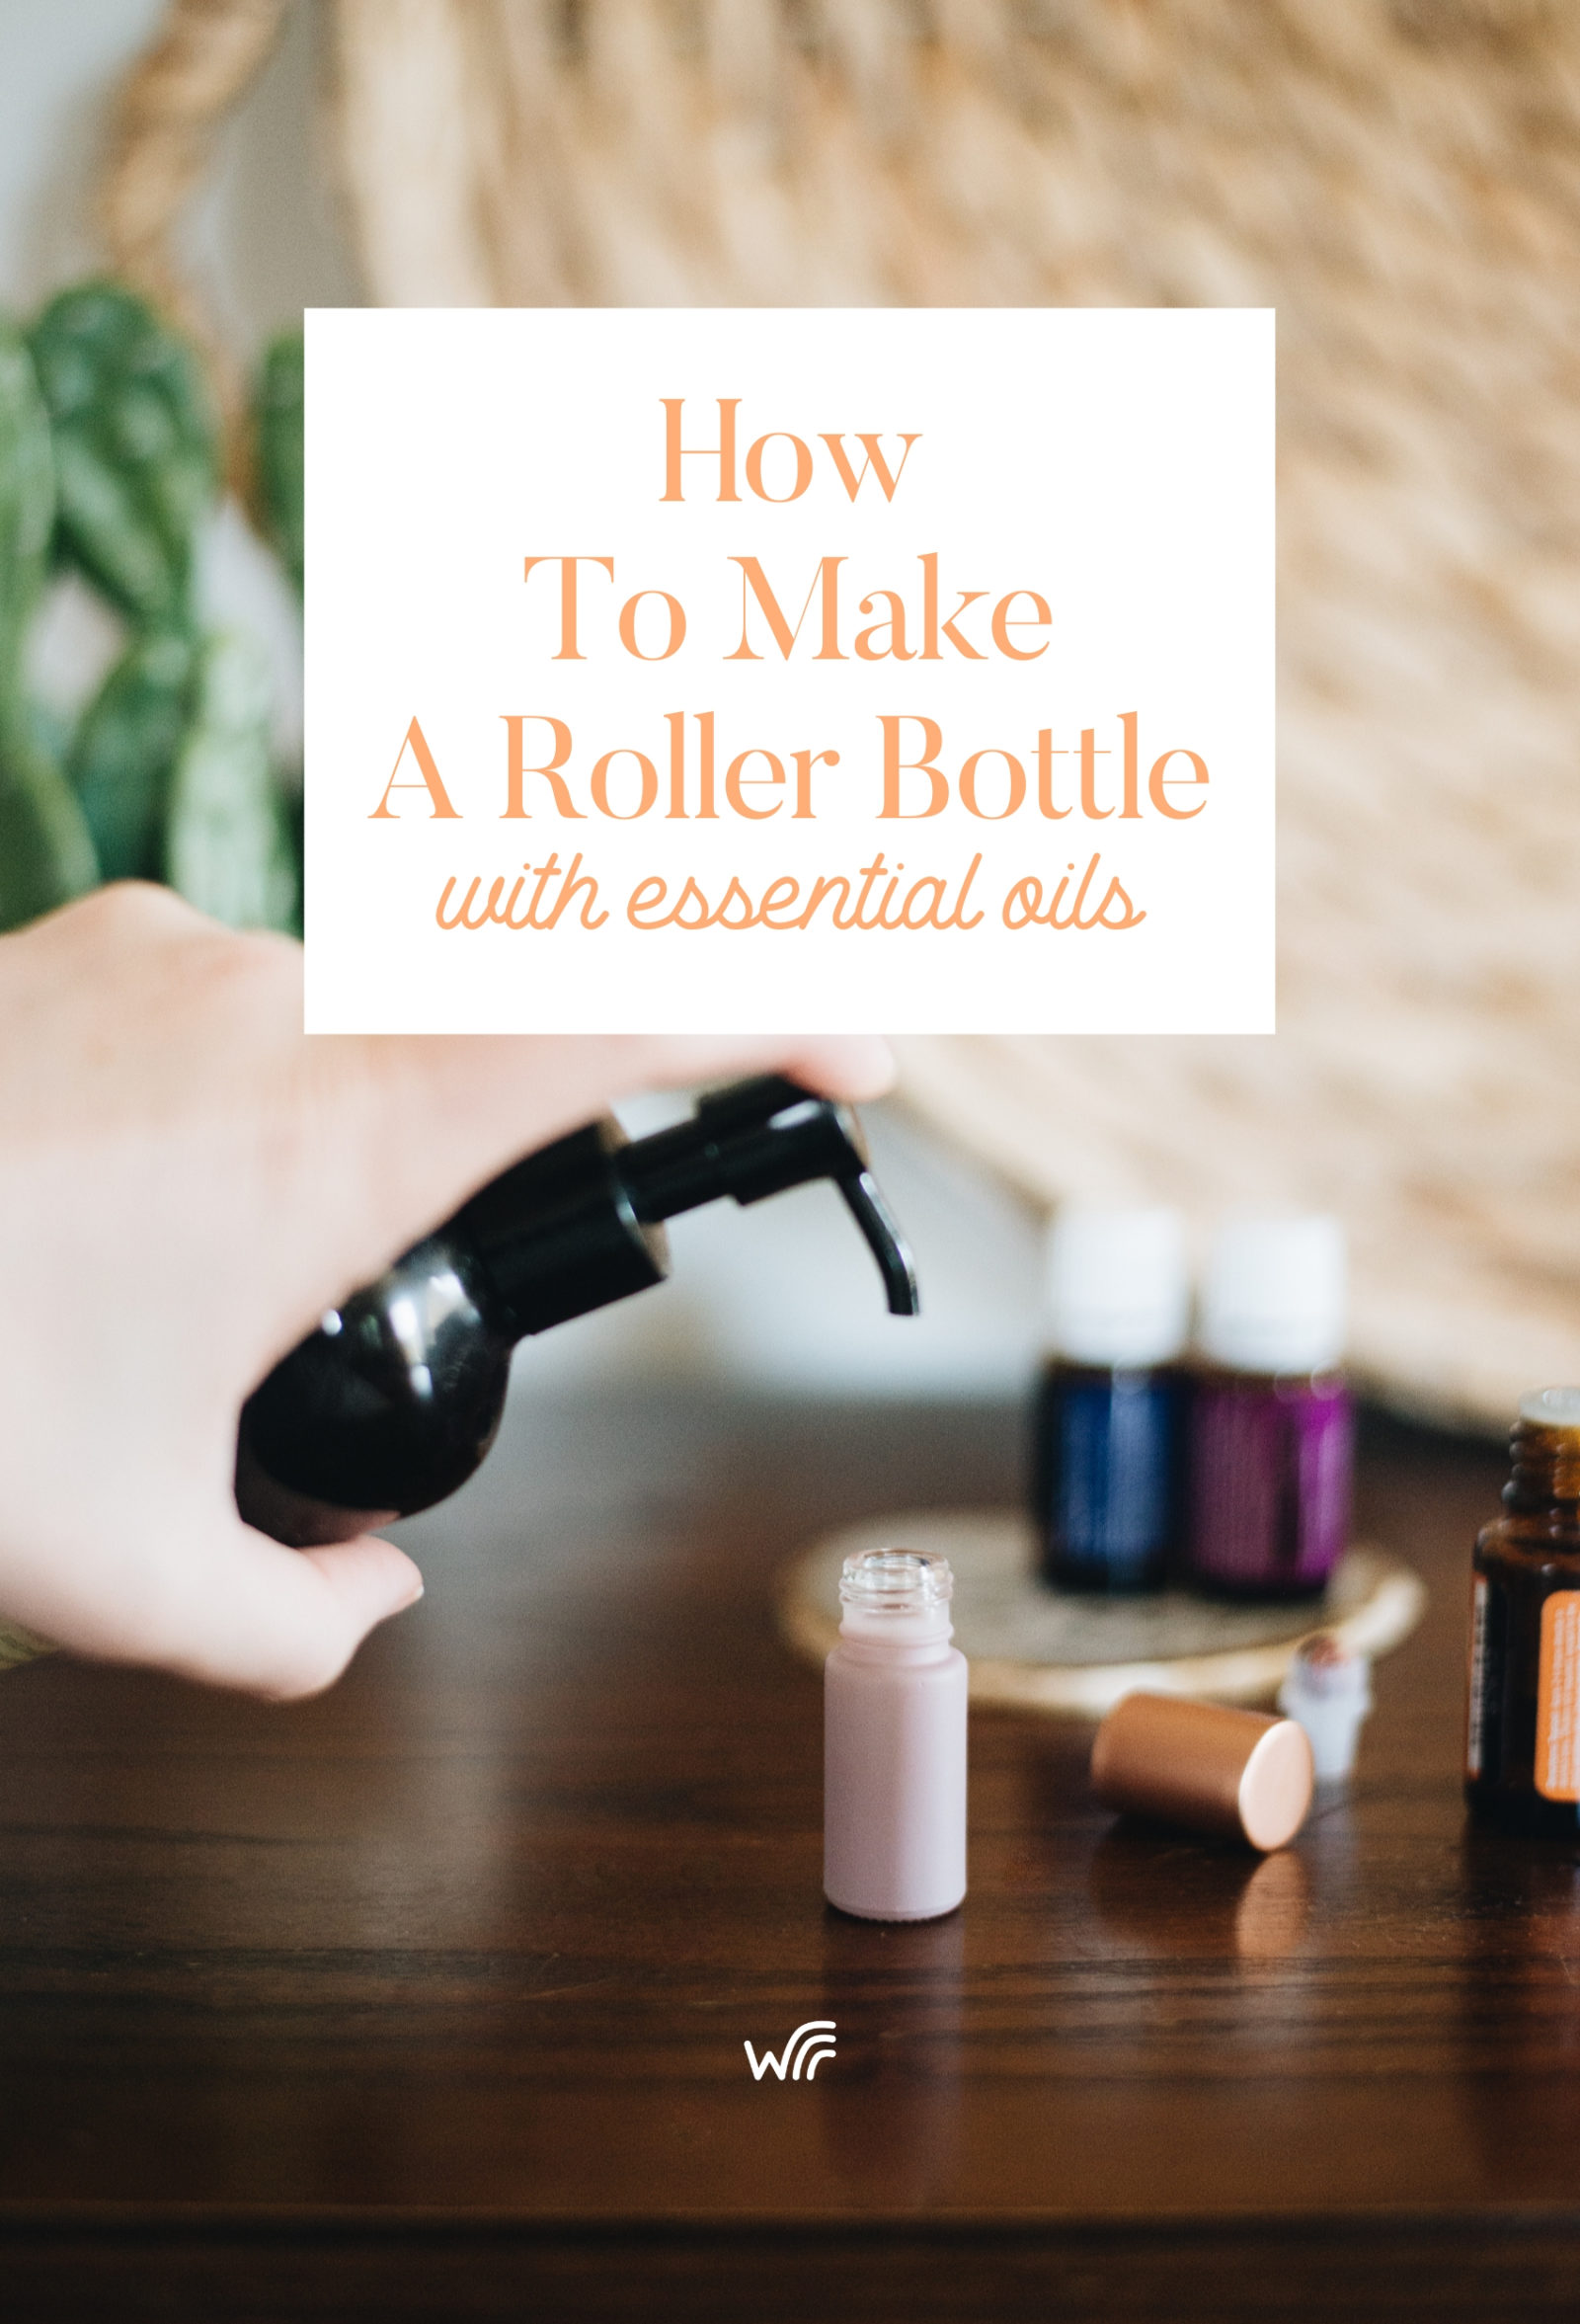 How To Make A Roller Bottle with Essential Oils Whimsy + Wellness